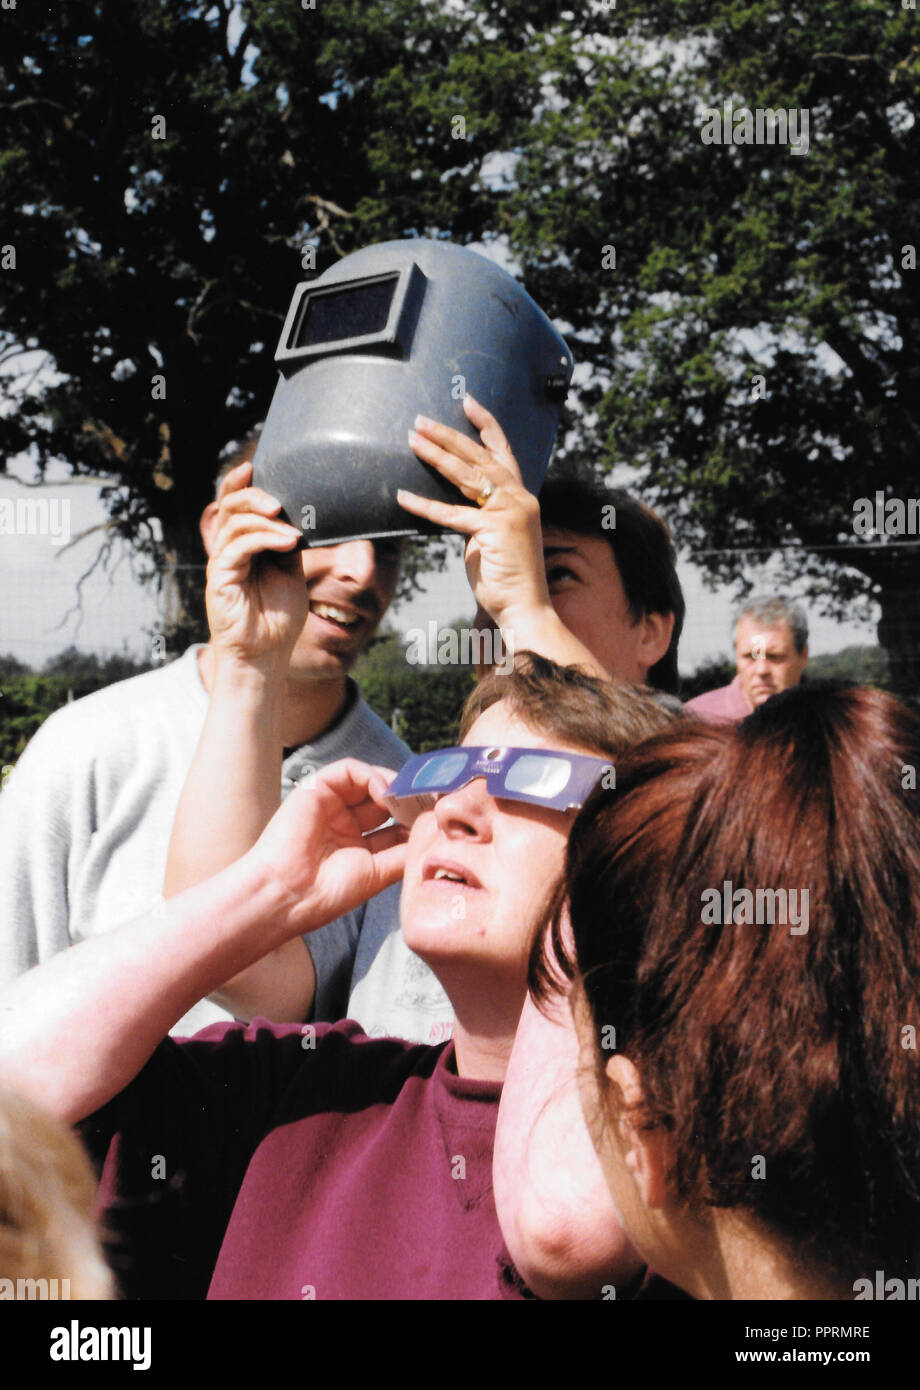 Eye protection -  August 1999. A Total Solar Eclipse is imminent in Hampshire UK and all means of eye protection, including a welder's mask, are used. - Stock Image